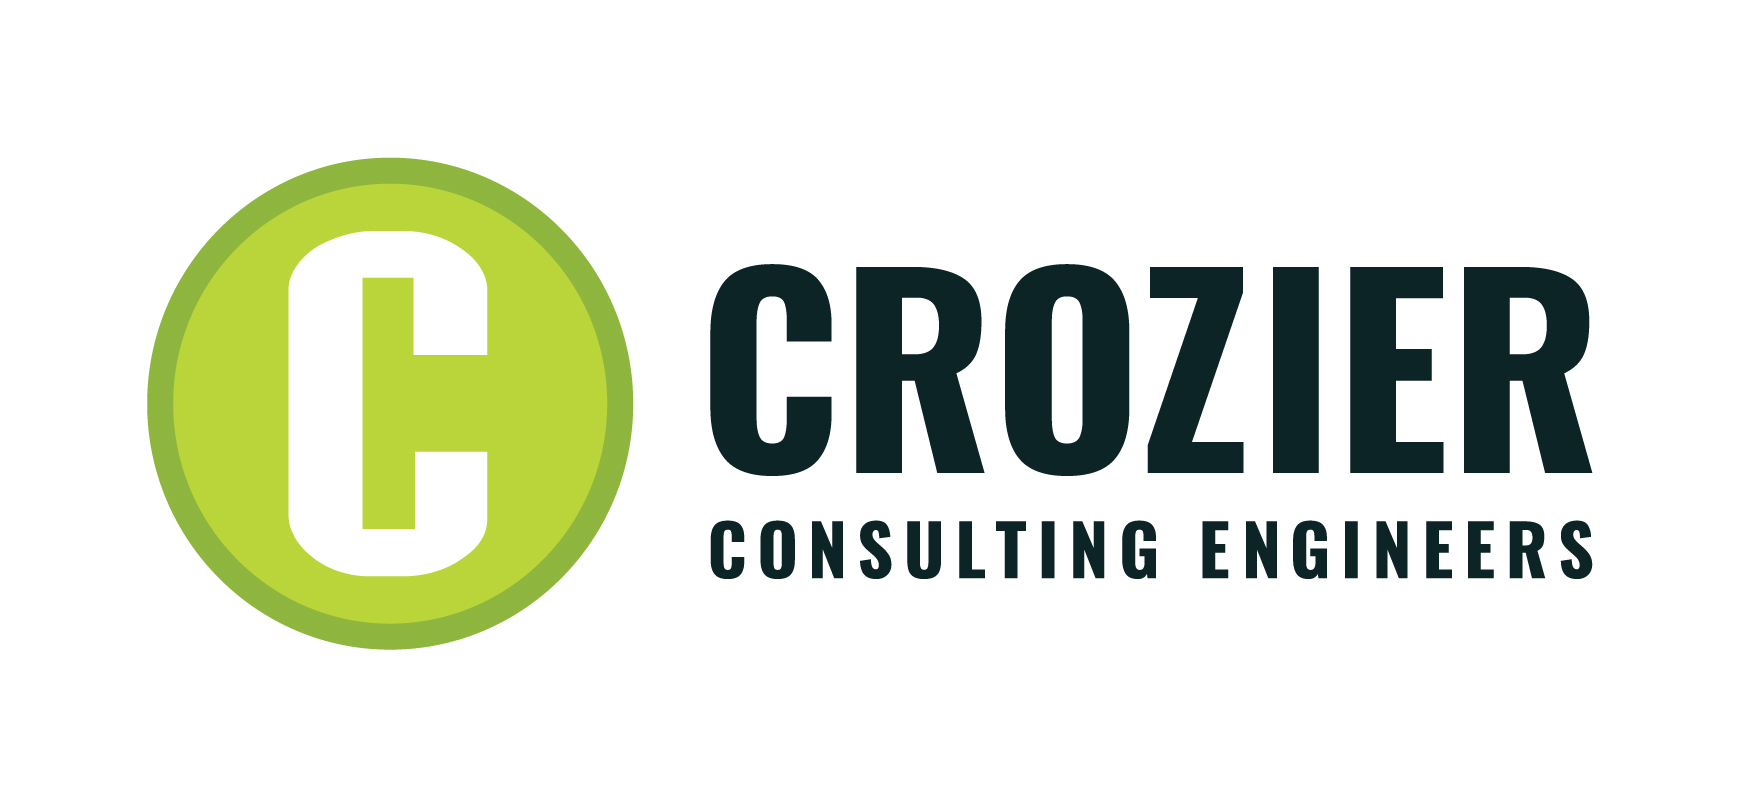 BASIC HOLE SPONSOR - C.F. Crozier & Associates Consulting Engineers - Logo